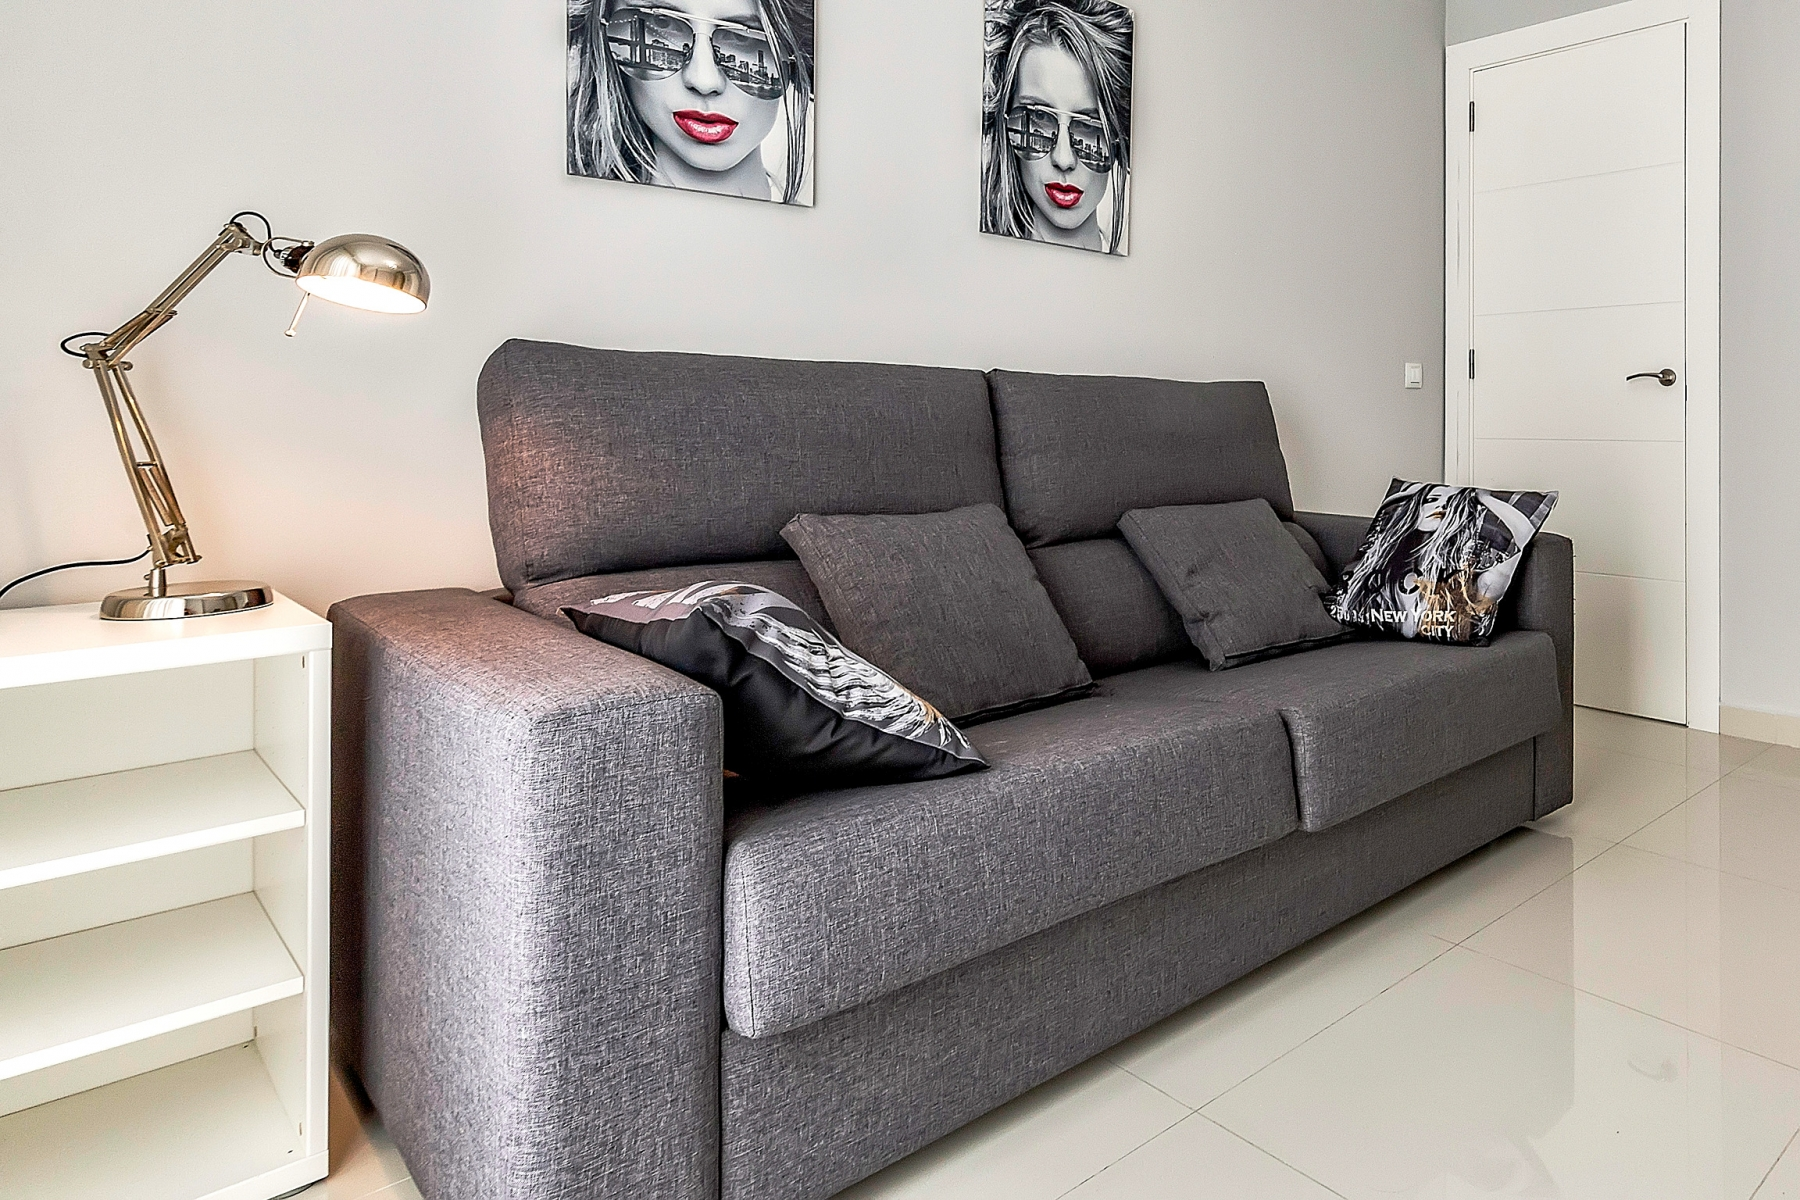 Properties for Sale in Tenerife, Canary Islands, Spain   SylkWayStar Real Estate. Luxury villa in the fashionable area of the south of the island of Tenerife – Madroñal.. Image-22774